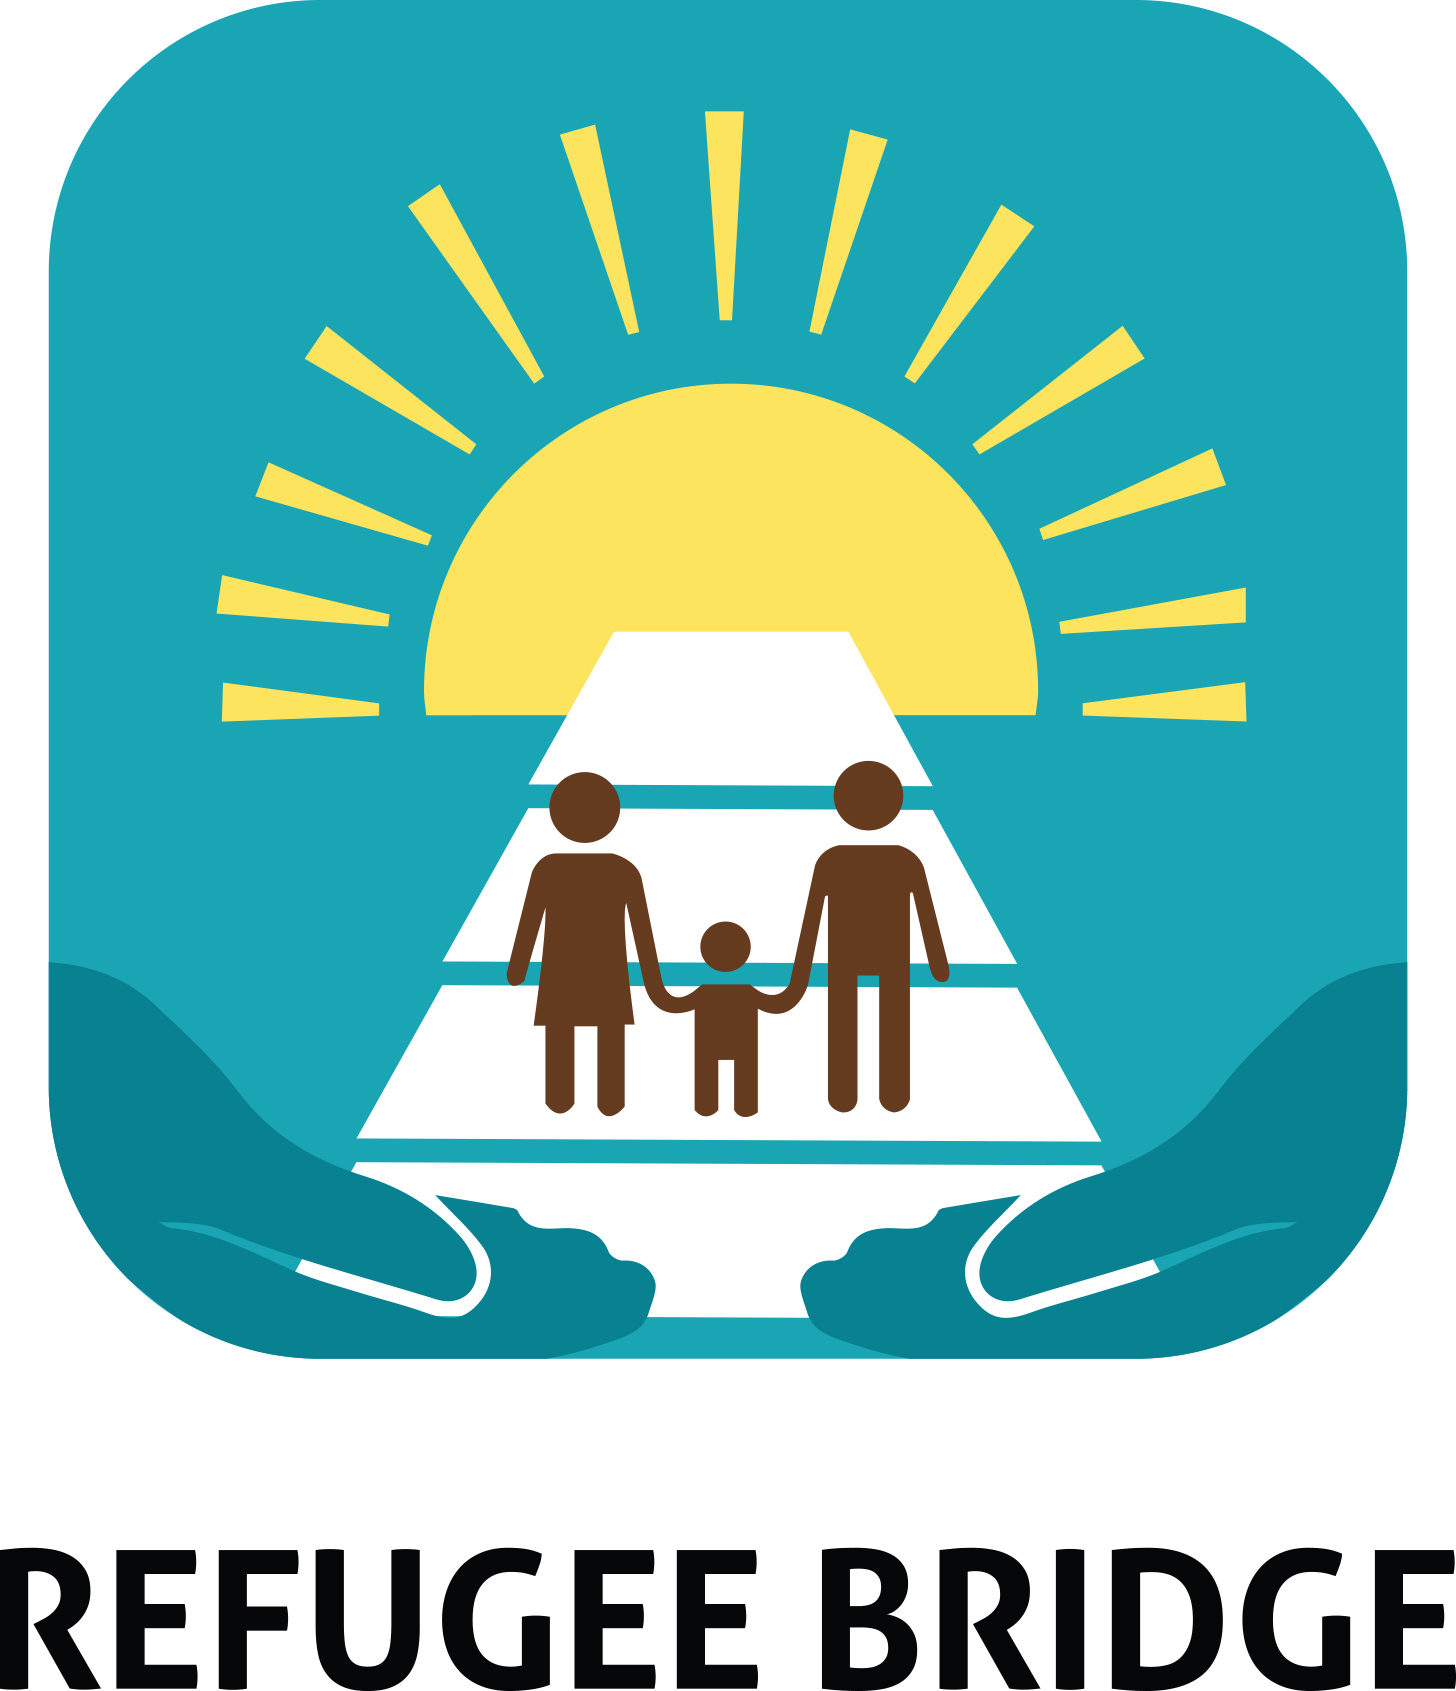 TWR's Refugee Bridge – an app to meet the needs of displaced people